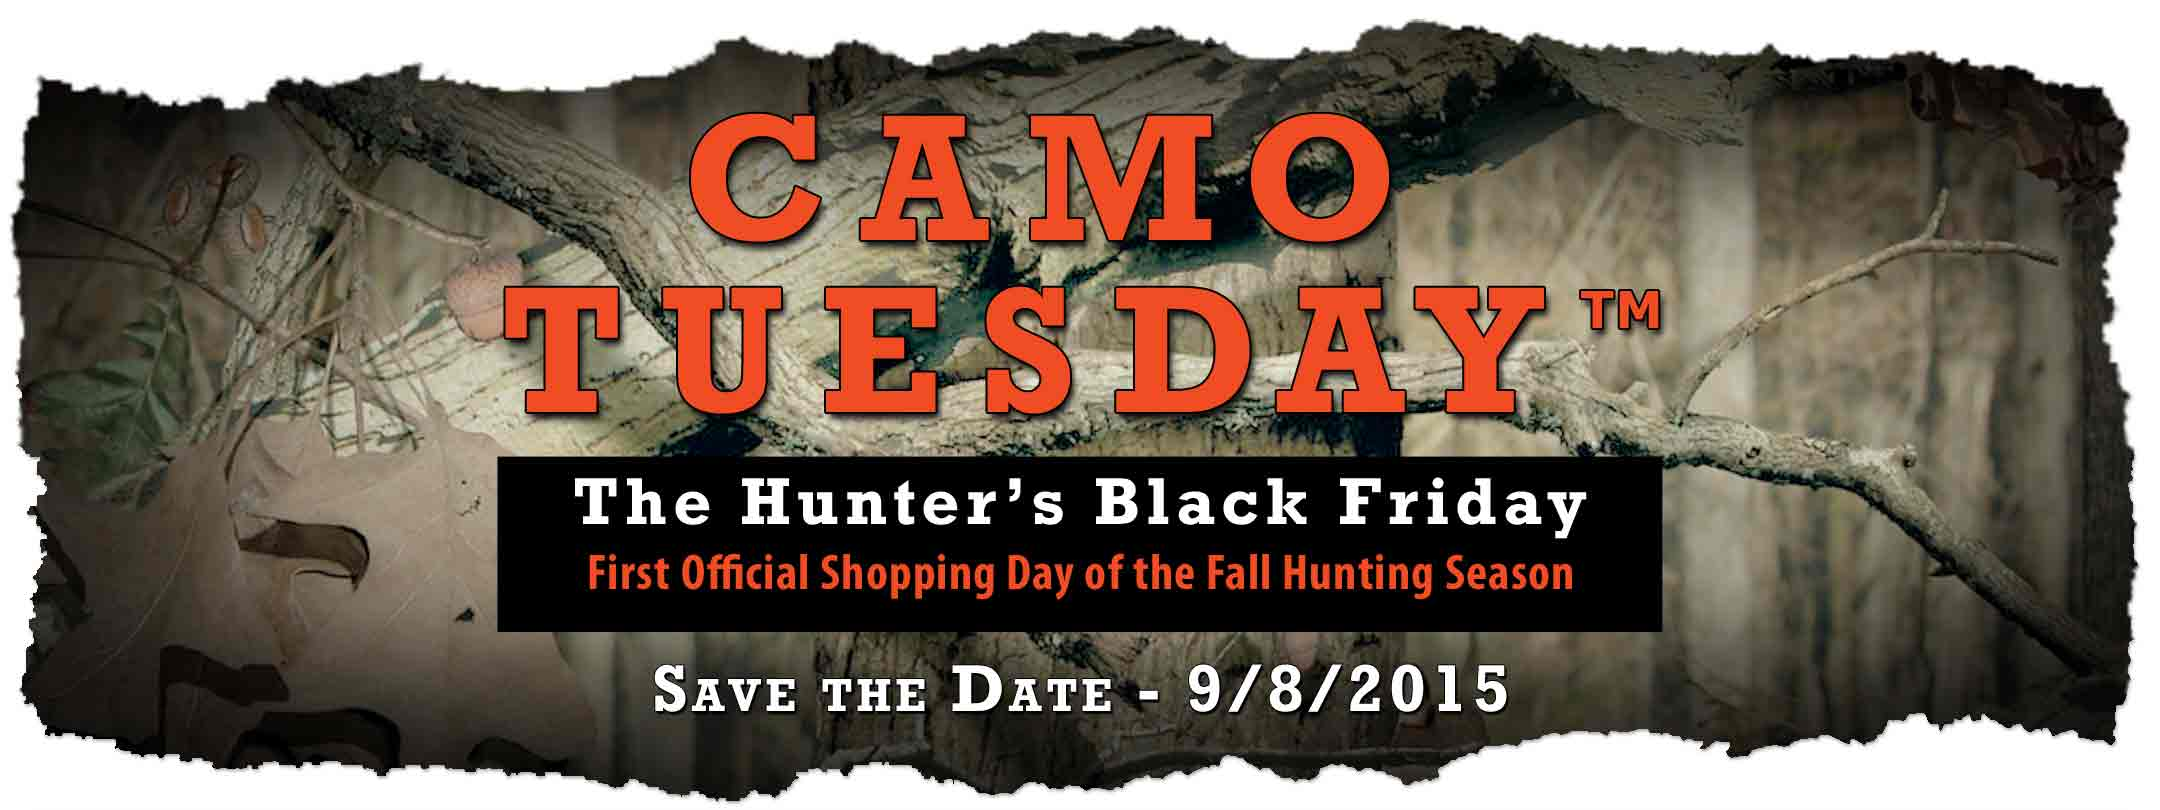 Camo Tuesday is just around the corner…